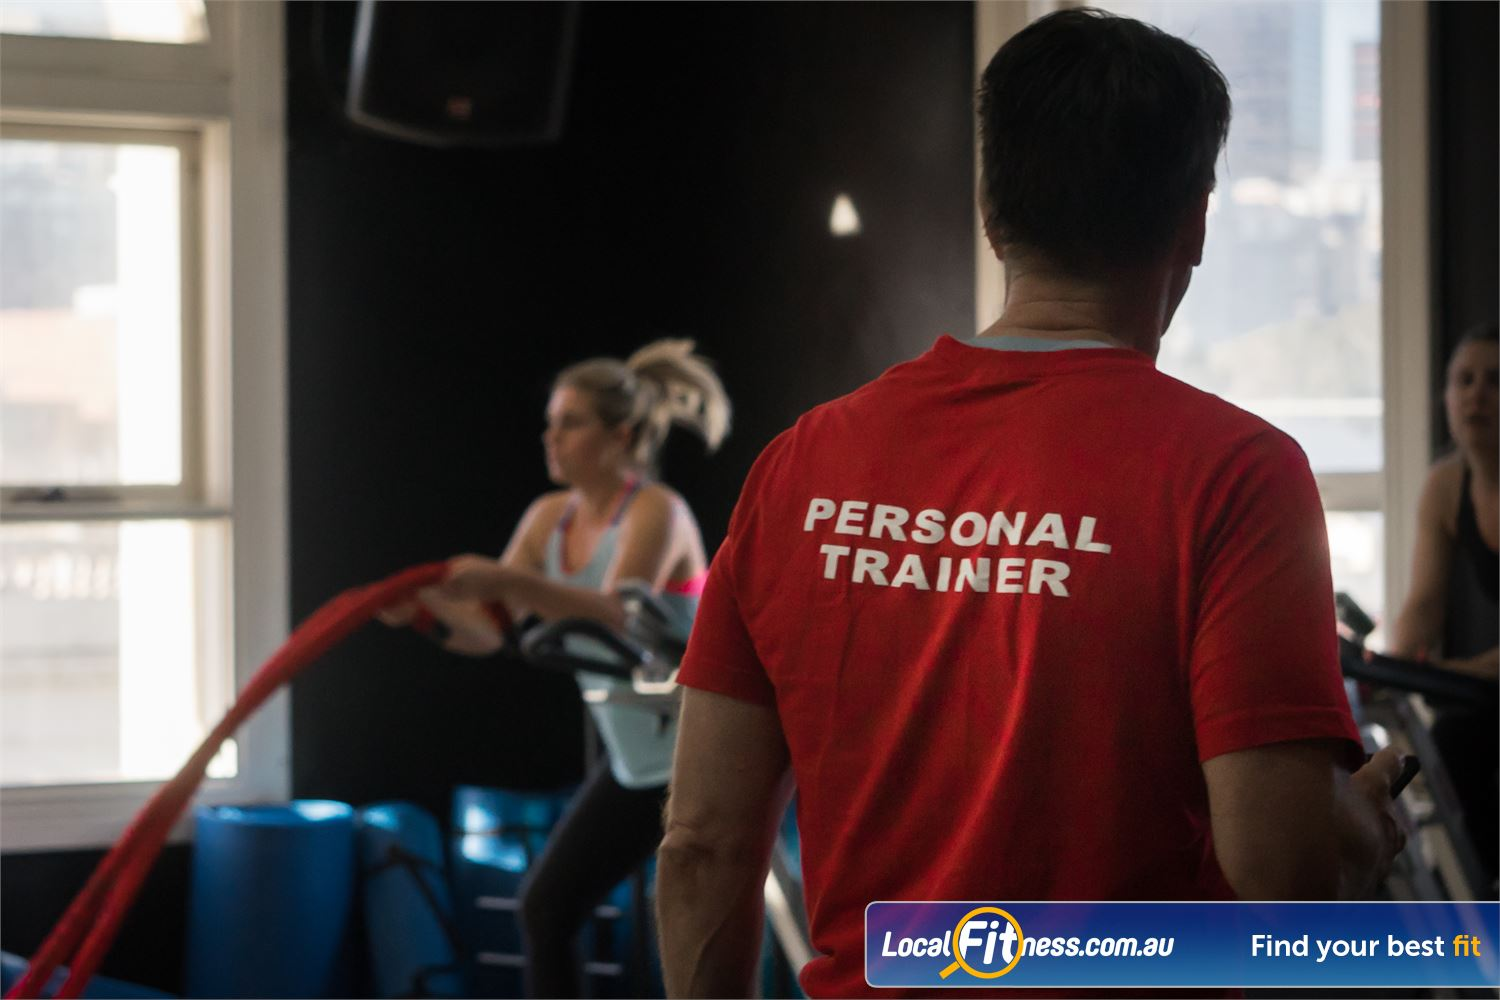 Equilibrium Health & Fitness 24/7 North Melbourne Our North Melbourne personal trainers can help you reach your goals.